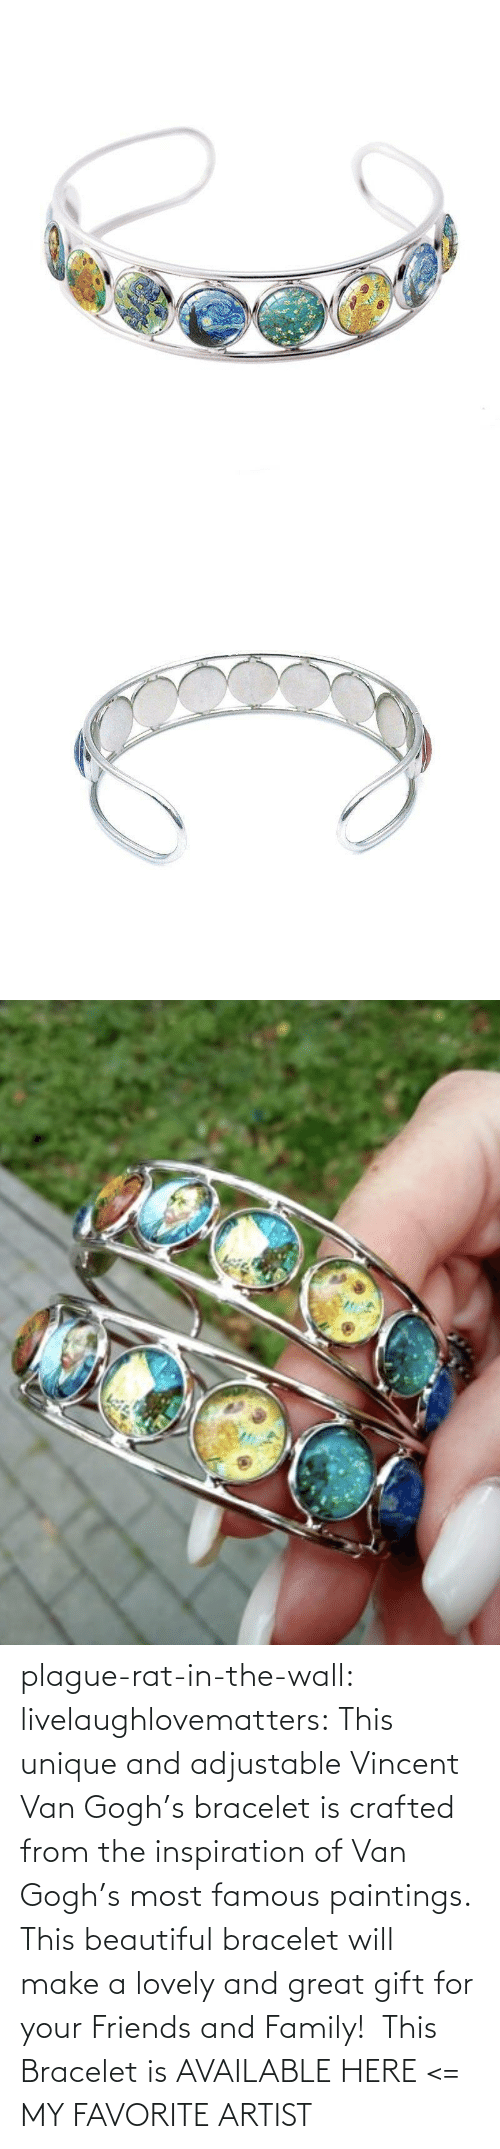 plague: plague-rat-in-the-wall:  livelaughlovematters: This unique and adjustable Vincent Van Gogh's bracelet is crafted from the inspiration of Van Gogh's most famous paintings. This beautiful bracelet will make a lovely and great gift for your Friends and Family!  This Bracelet is AVAILABLE HERE <=  MY FAVORITE ARTIST